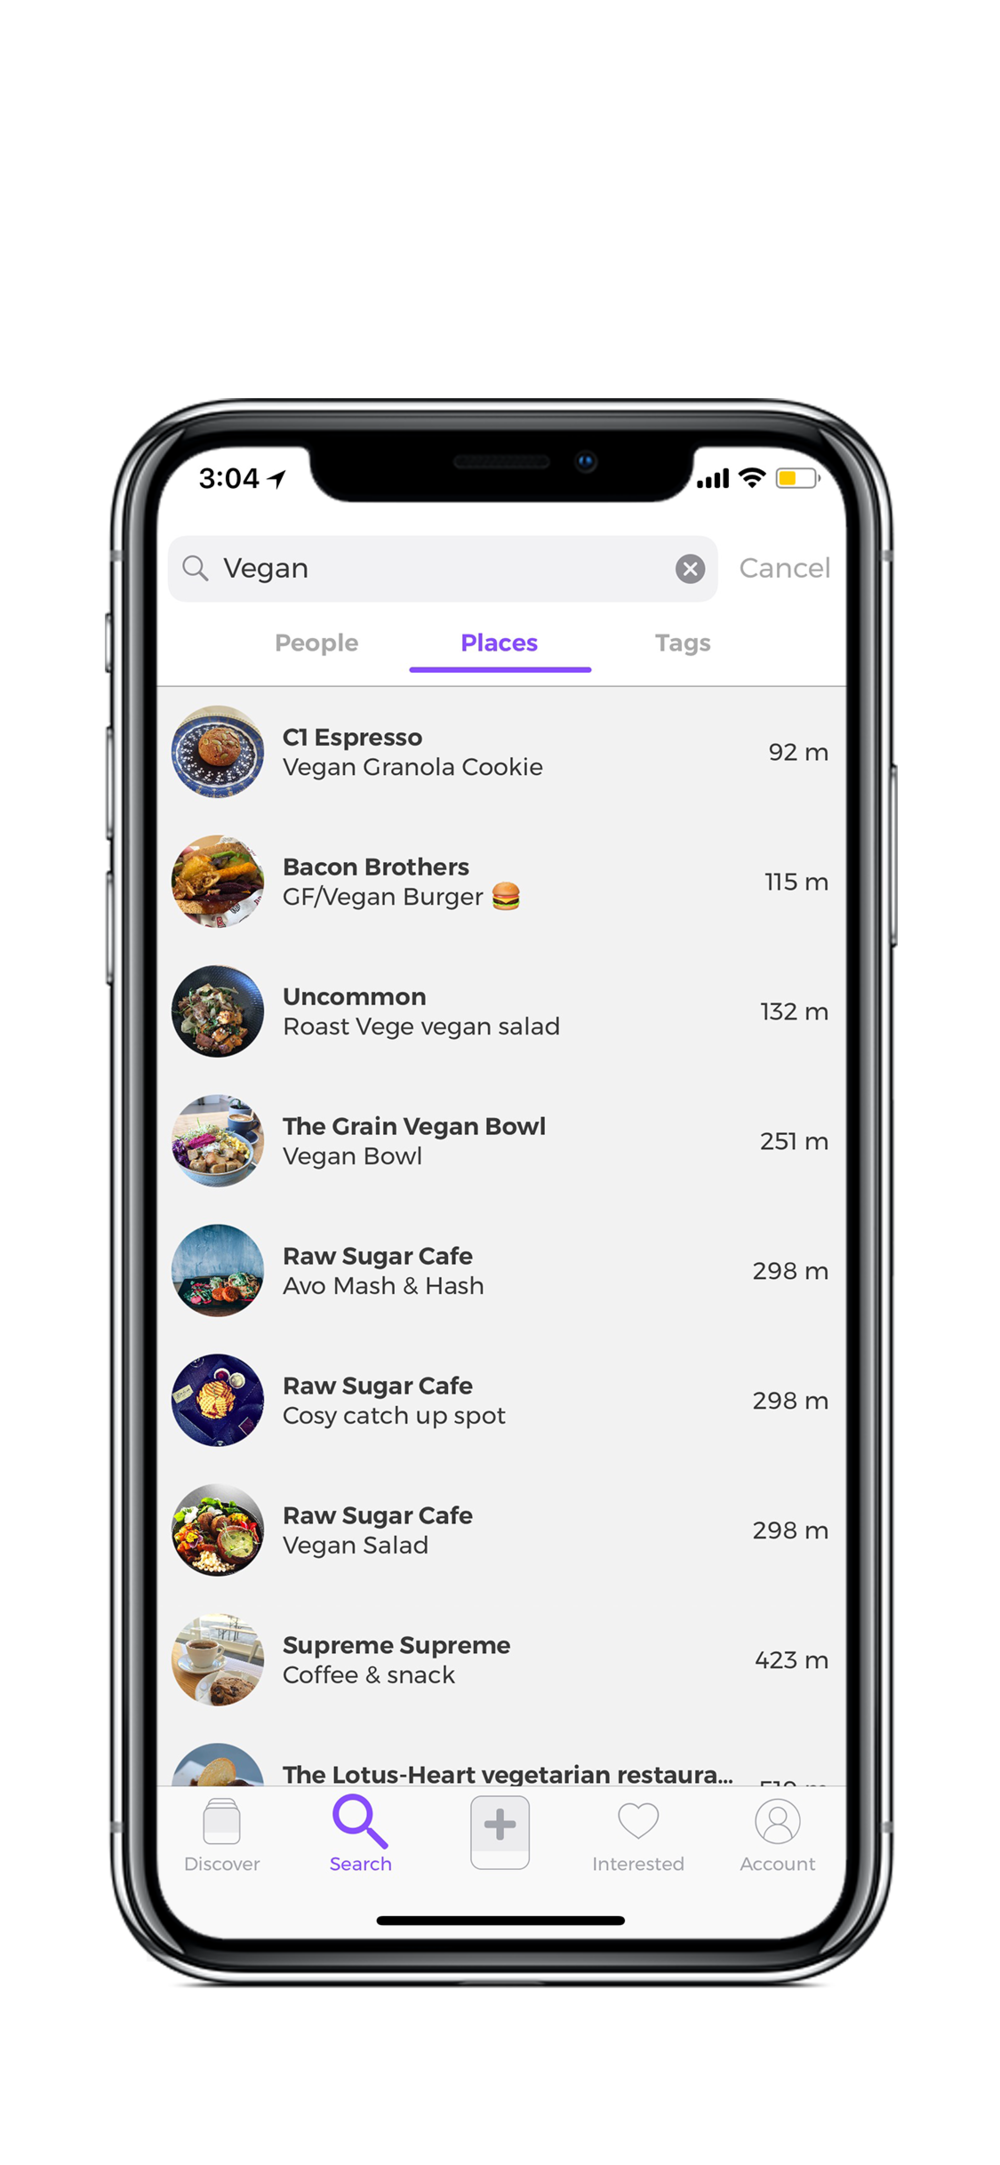 Searching - How do I search for something eg Vegan, child friendly?In iOS and soon to Android you can search using the 'search' tab for anything from the closest waterfall to where to find the best chocolate experiences around you.